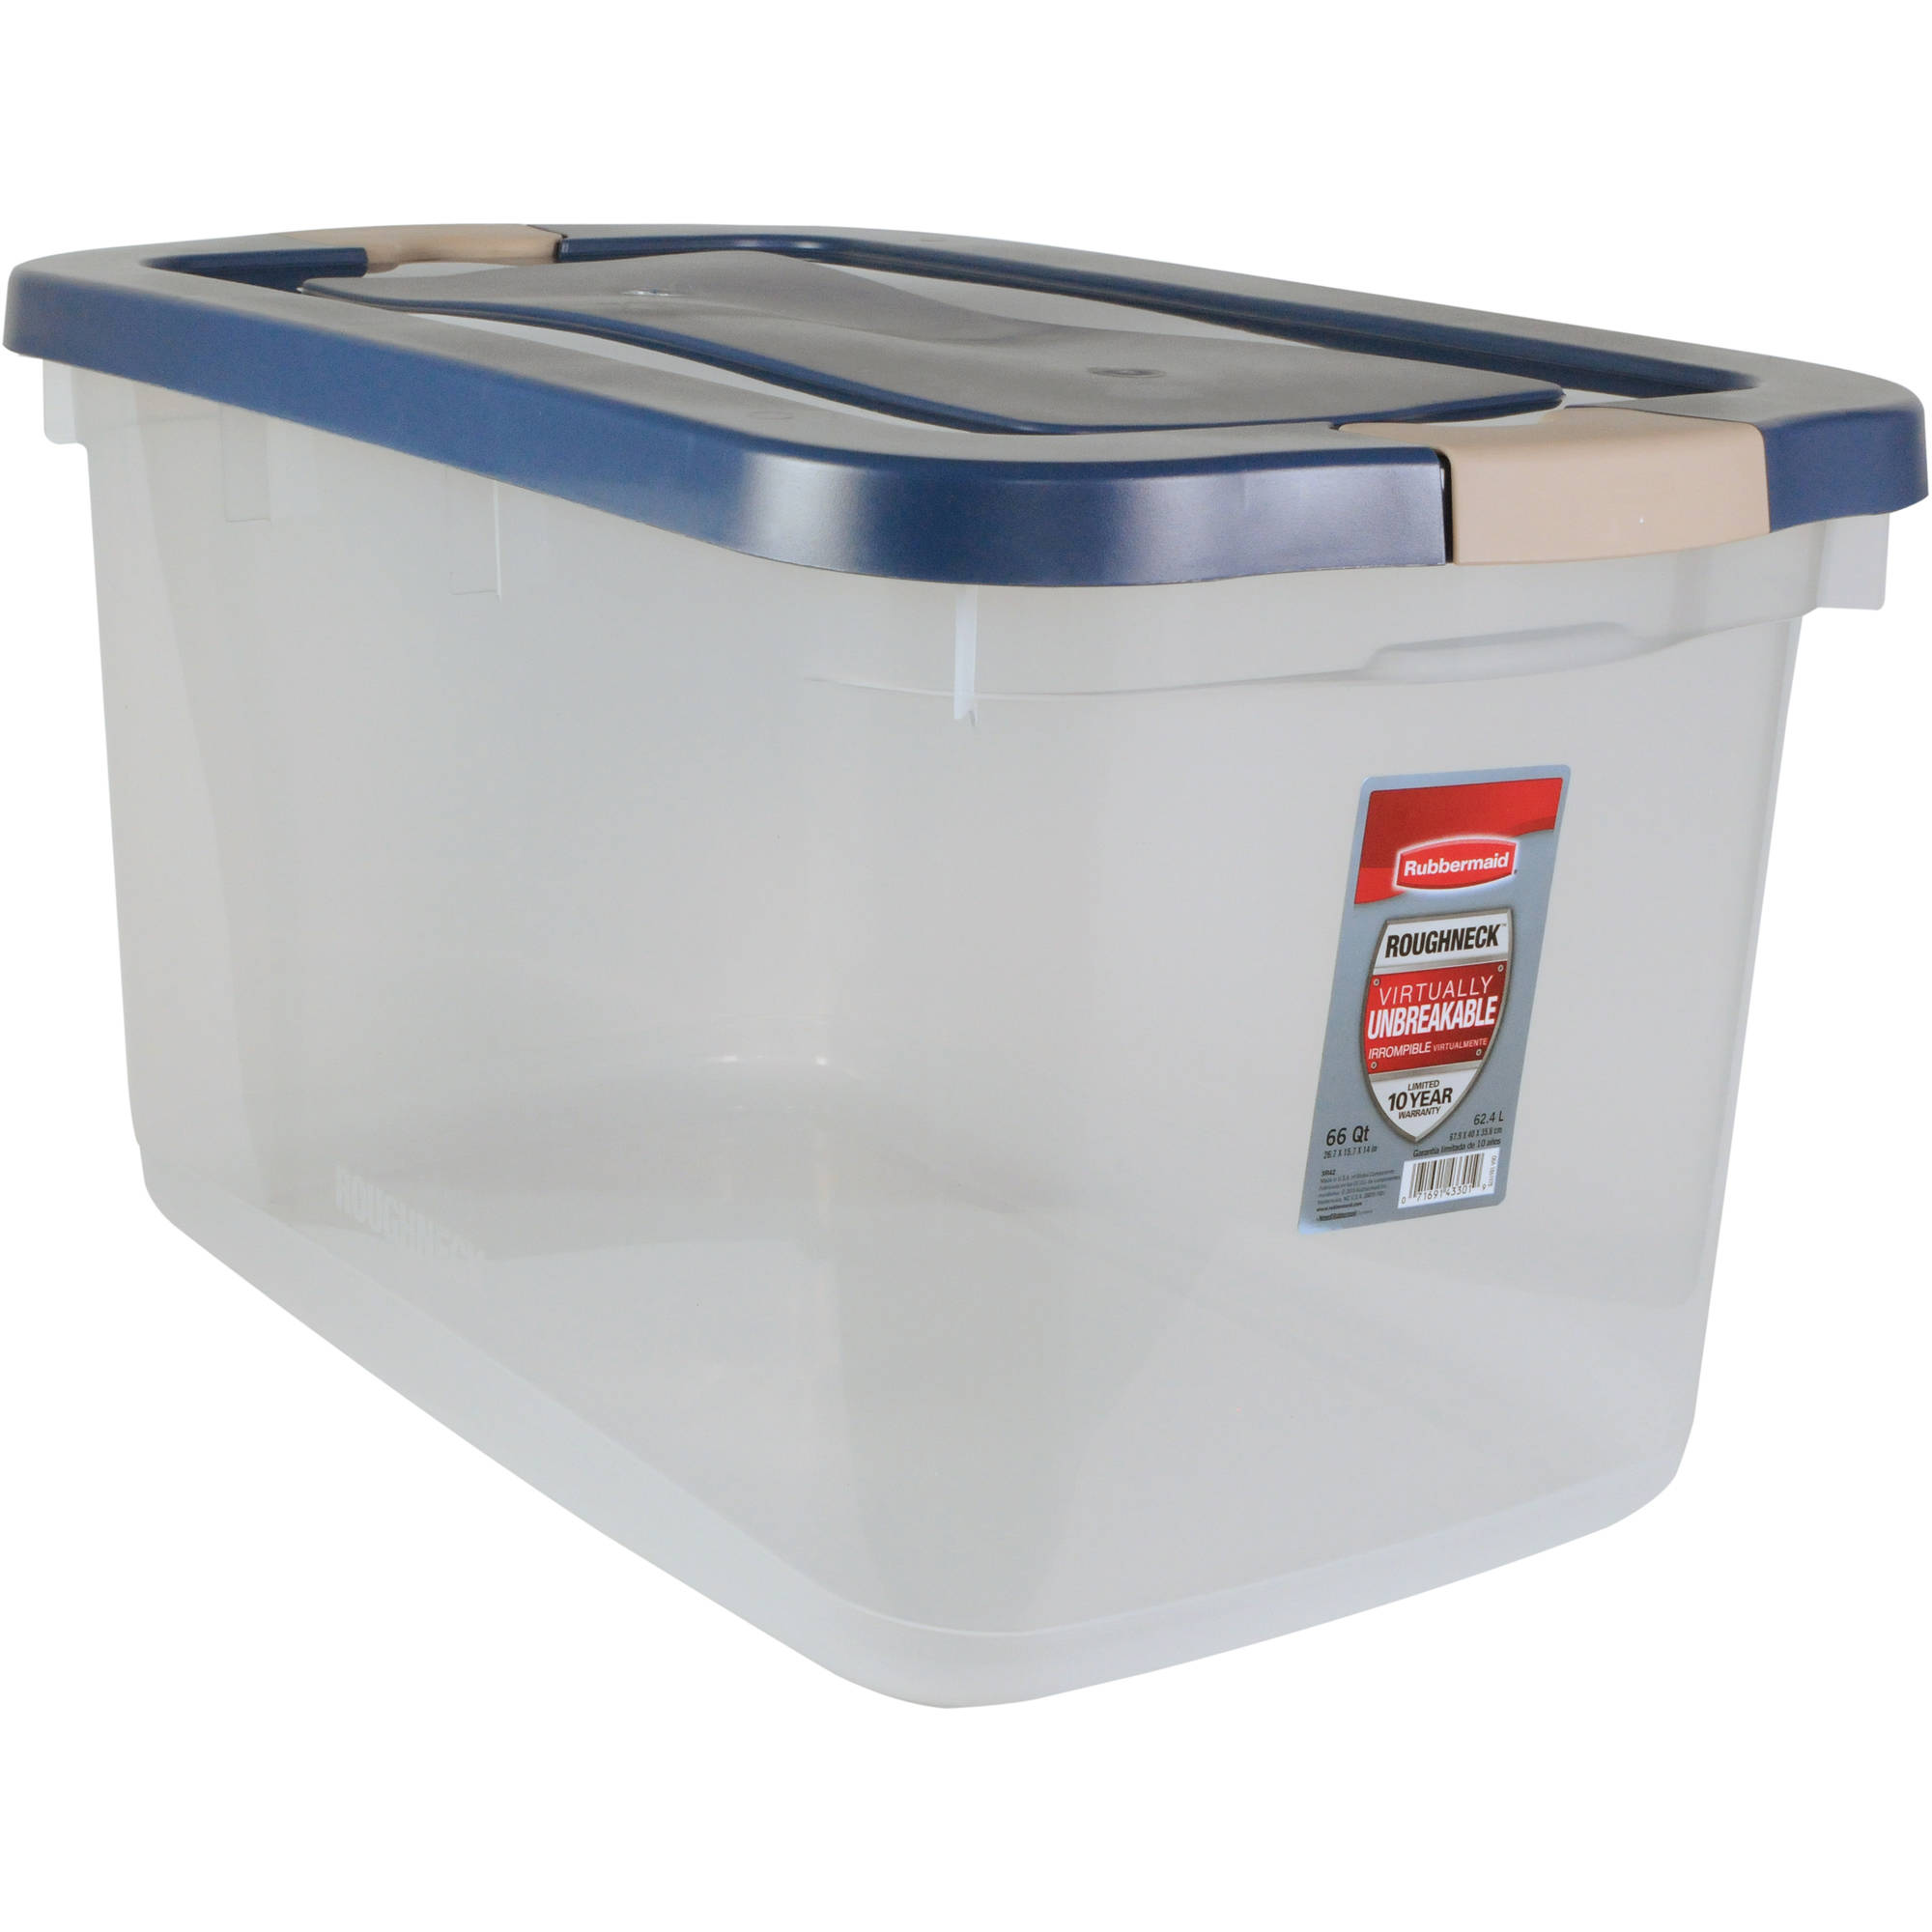 Best Kitchen Gallery: Rubbermaid Roughneck Clear Storage Tote Box 66 Qt Container Latching of Plastic Storage Containers on rachelxblog.com